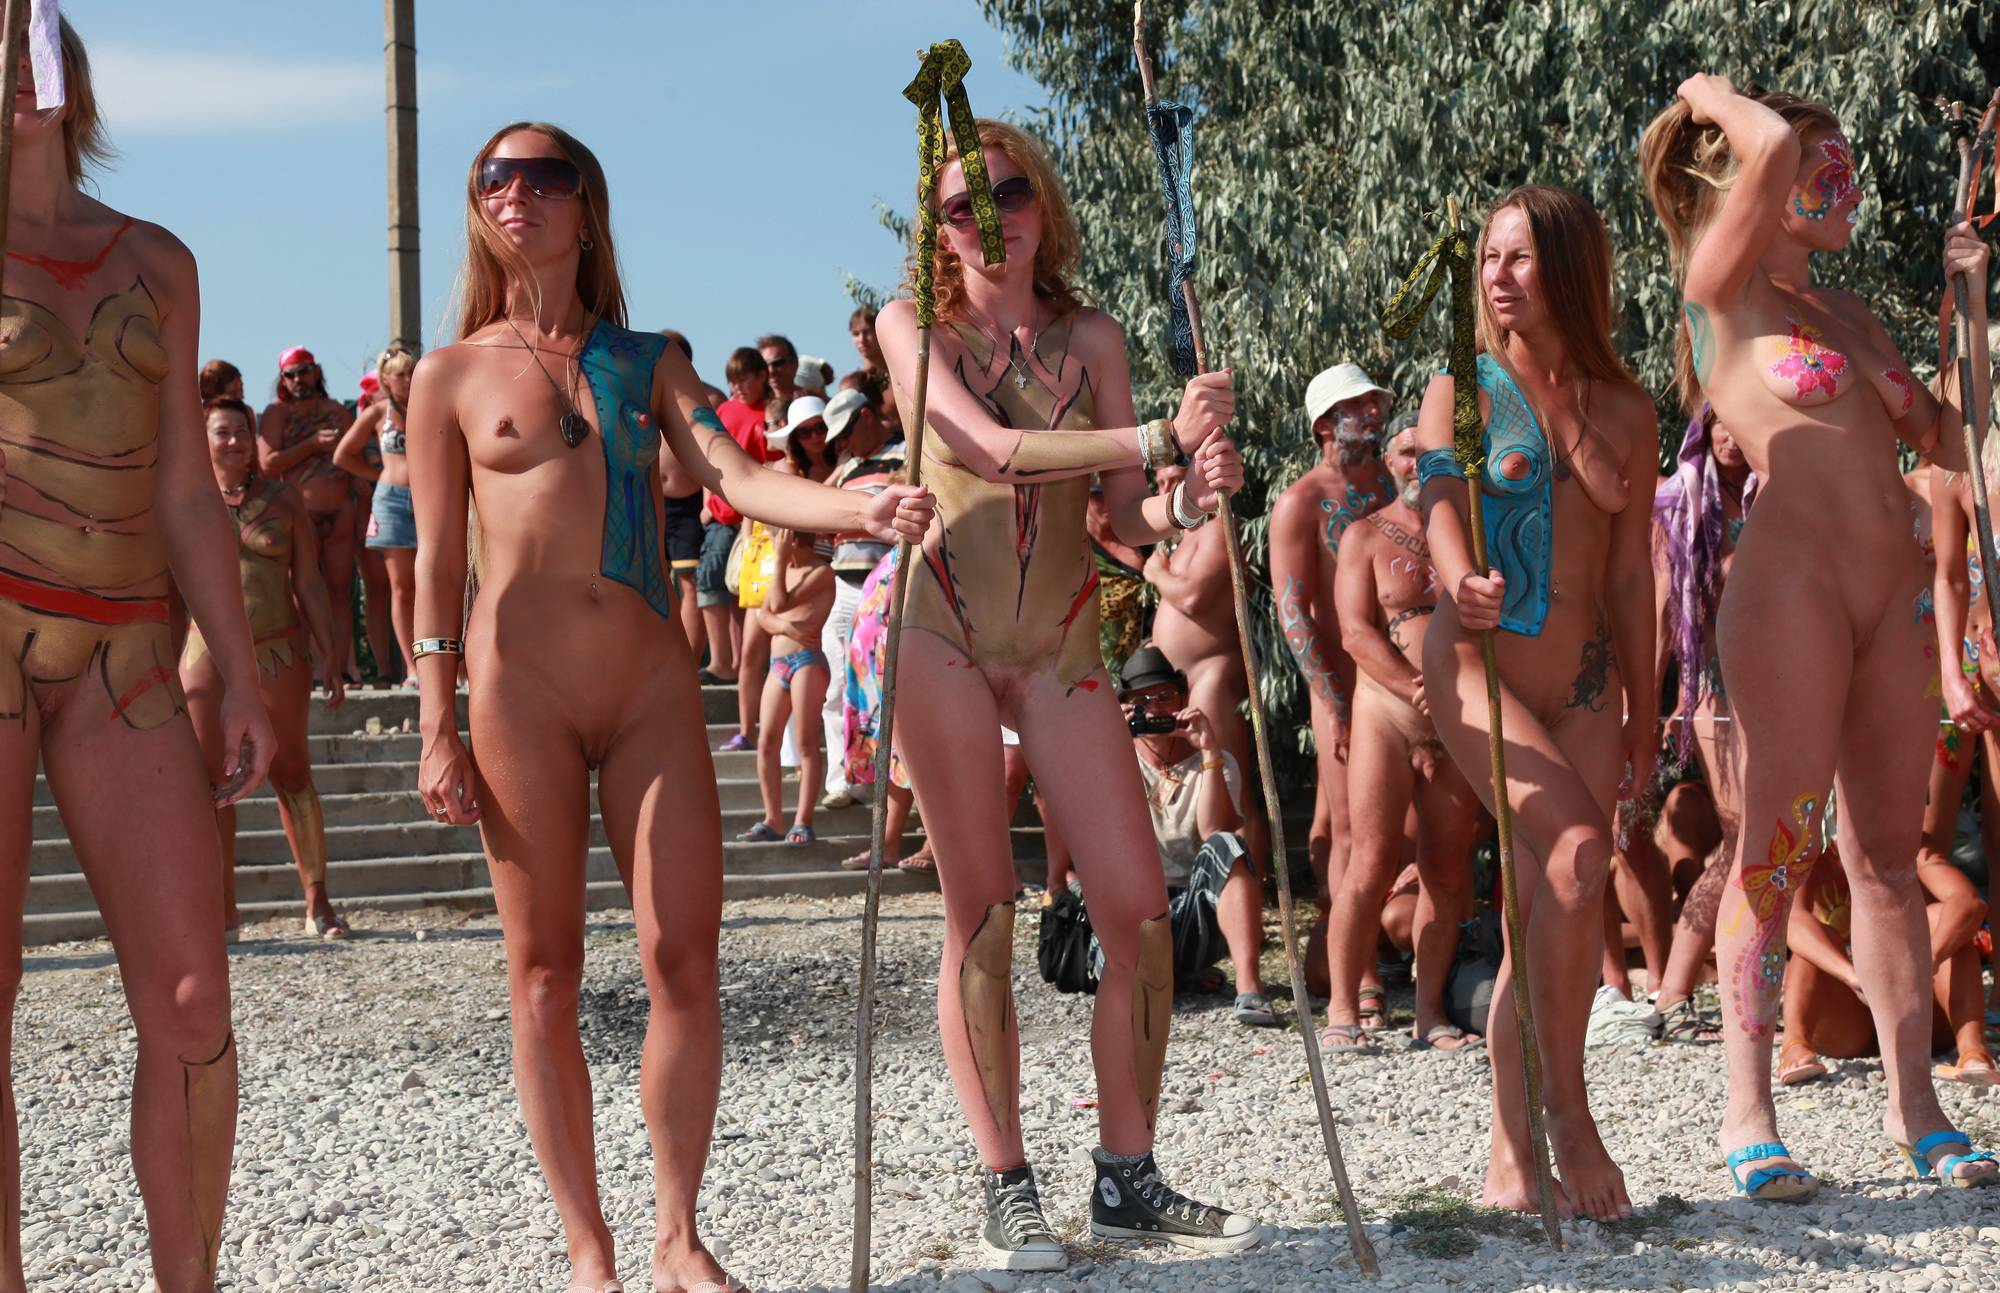 Nudist Gallery Naturist Day From Behind - 1